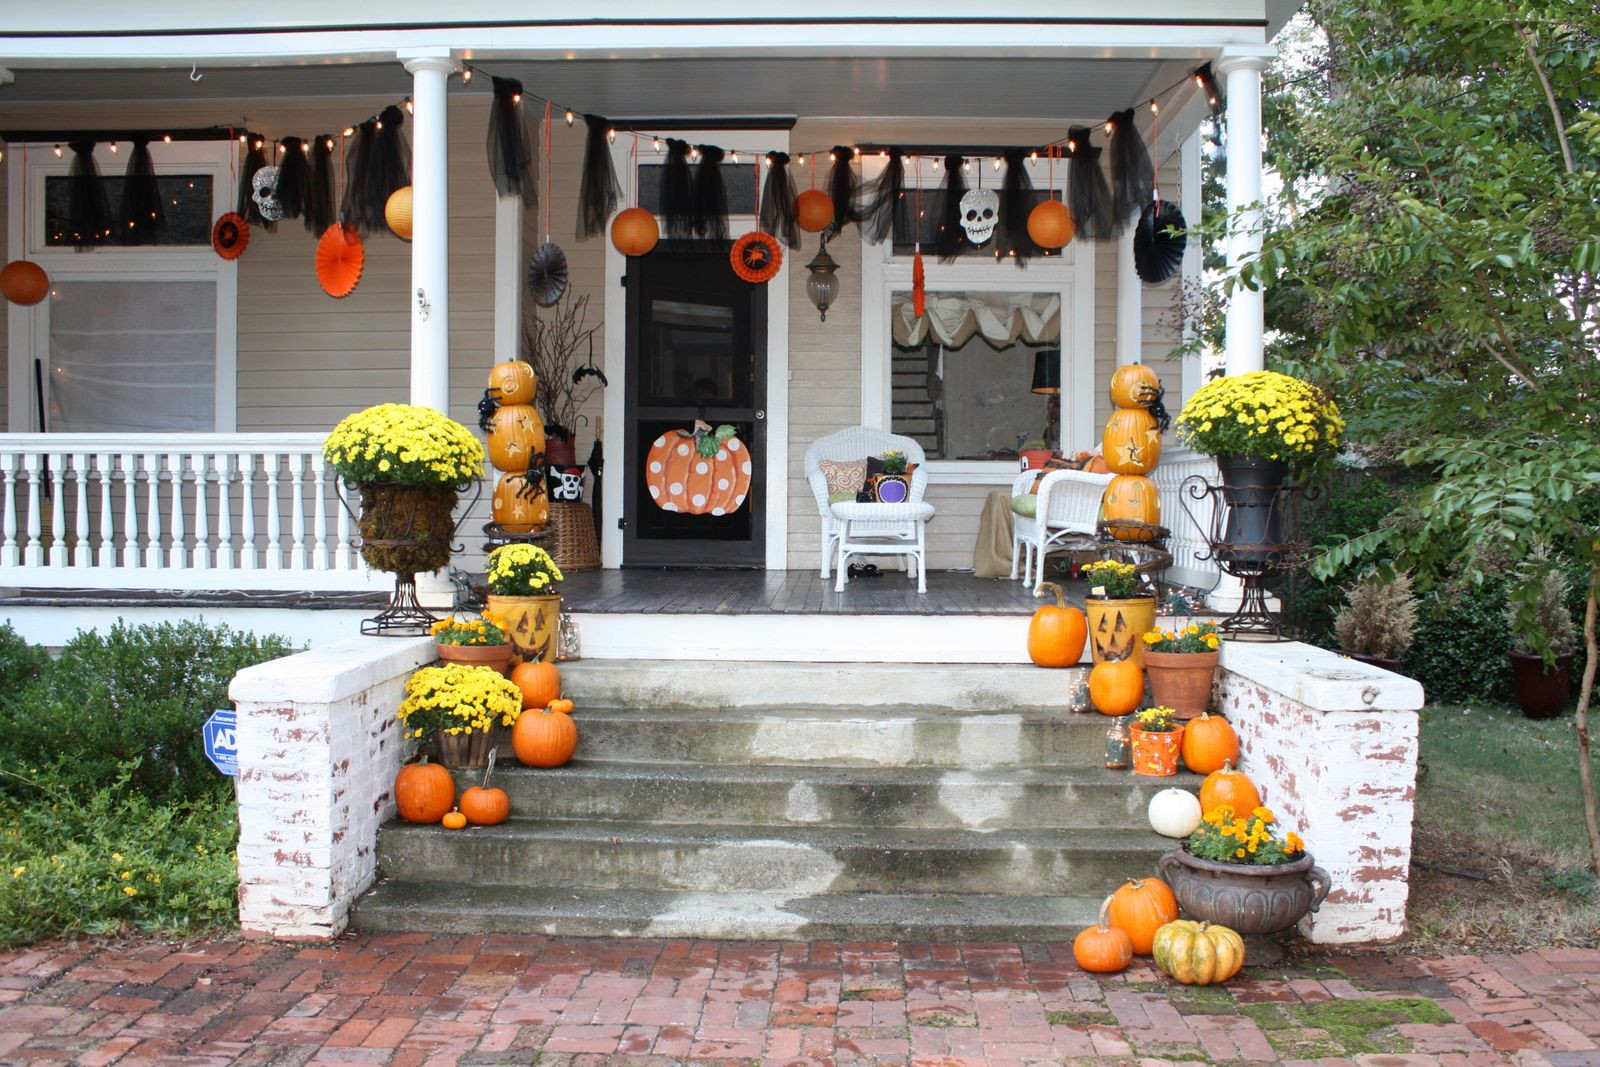 Porch Halloween Decorations  Our Southern Nest Whimsical Halloween Decorations